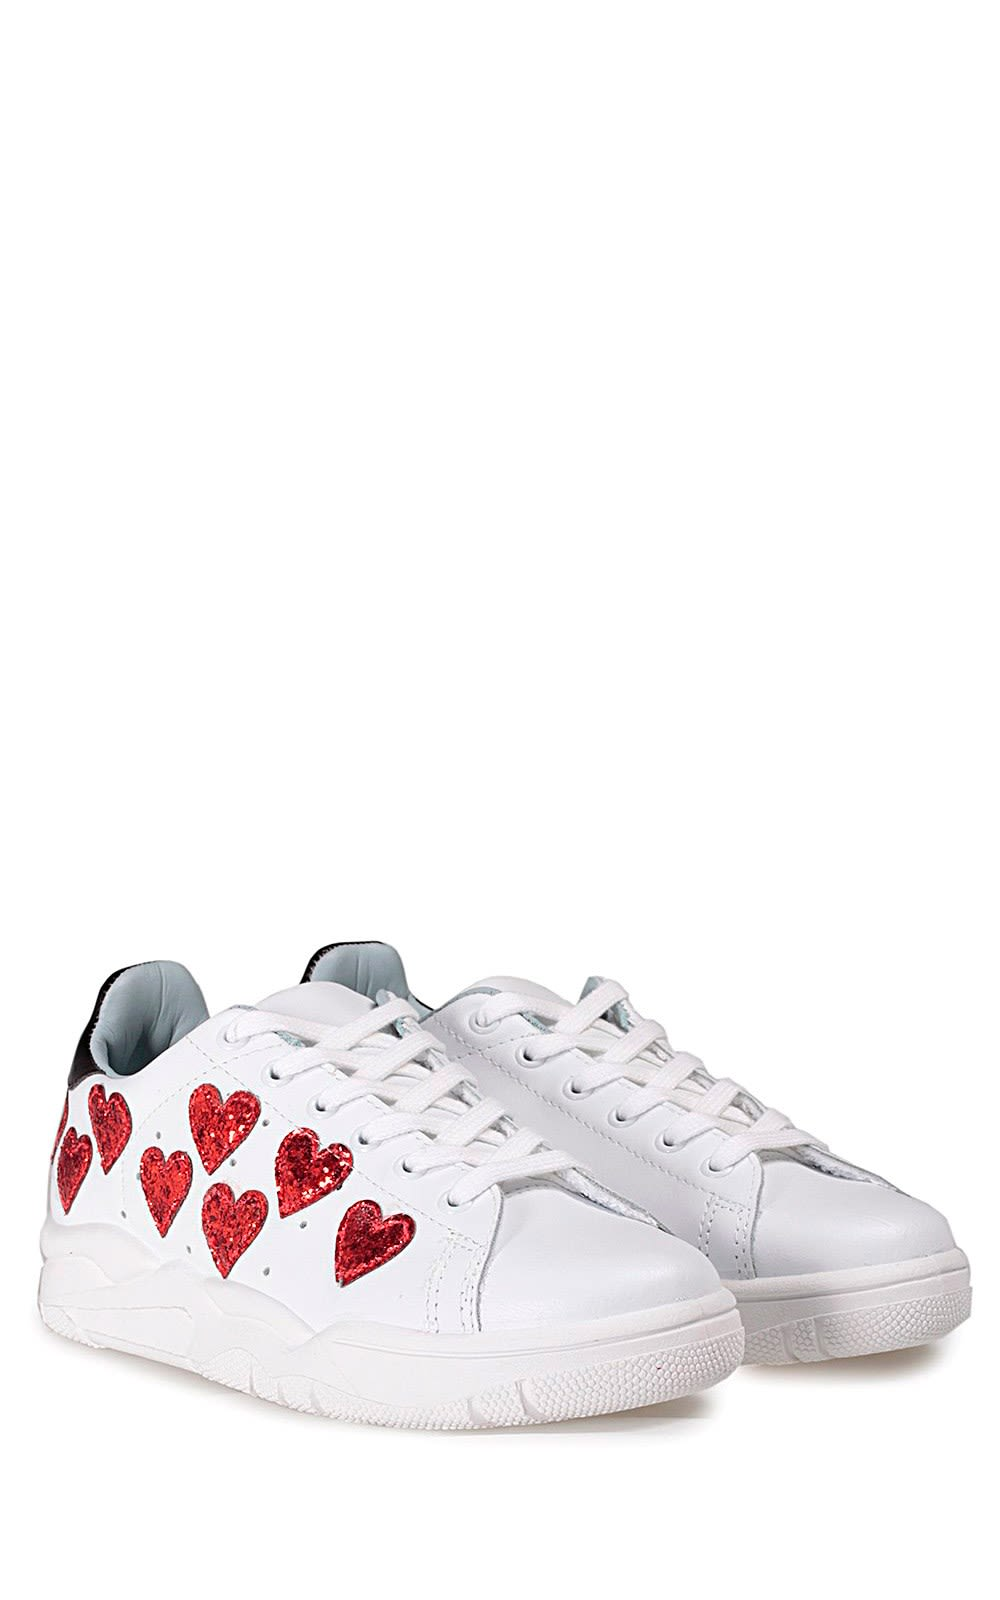 Roger Heart leather sneakers Chiara Ferragni Fashionable Cheap Price Sale Best Wholesale Cheap Buy Authentic Sale Choice Free Shipping Latest Collections 1iTMiVs